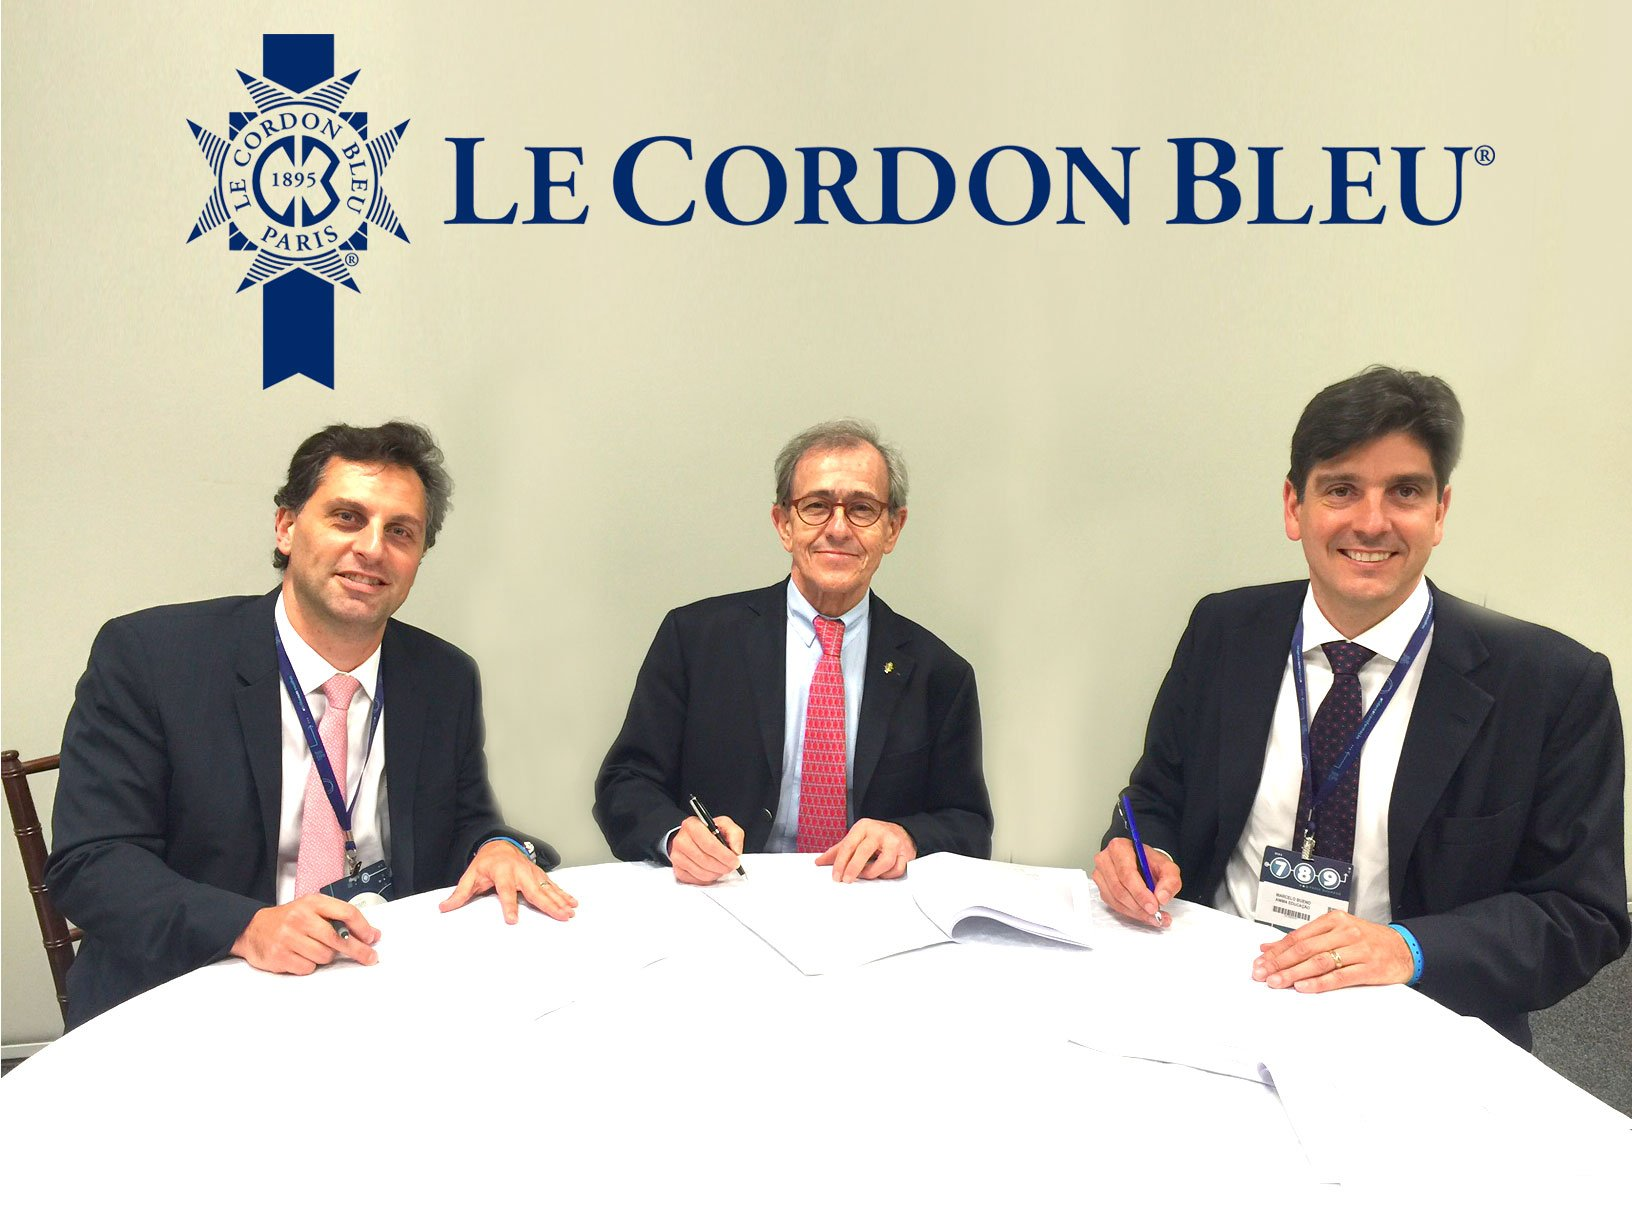 Picture (from right to left) – Daniel Faccini Castanho (Anima), André Cointreau (Le Cordon Bleu), Vice President Marcelo Battistella Bueno (Anima)